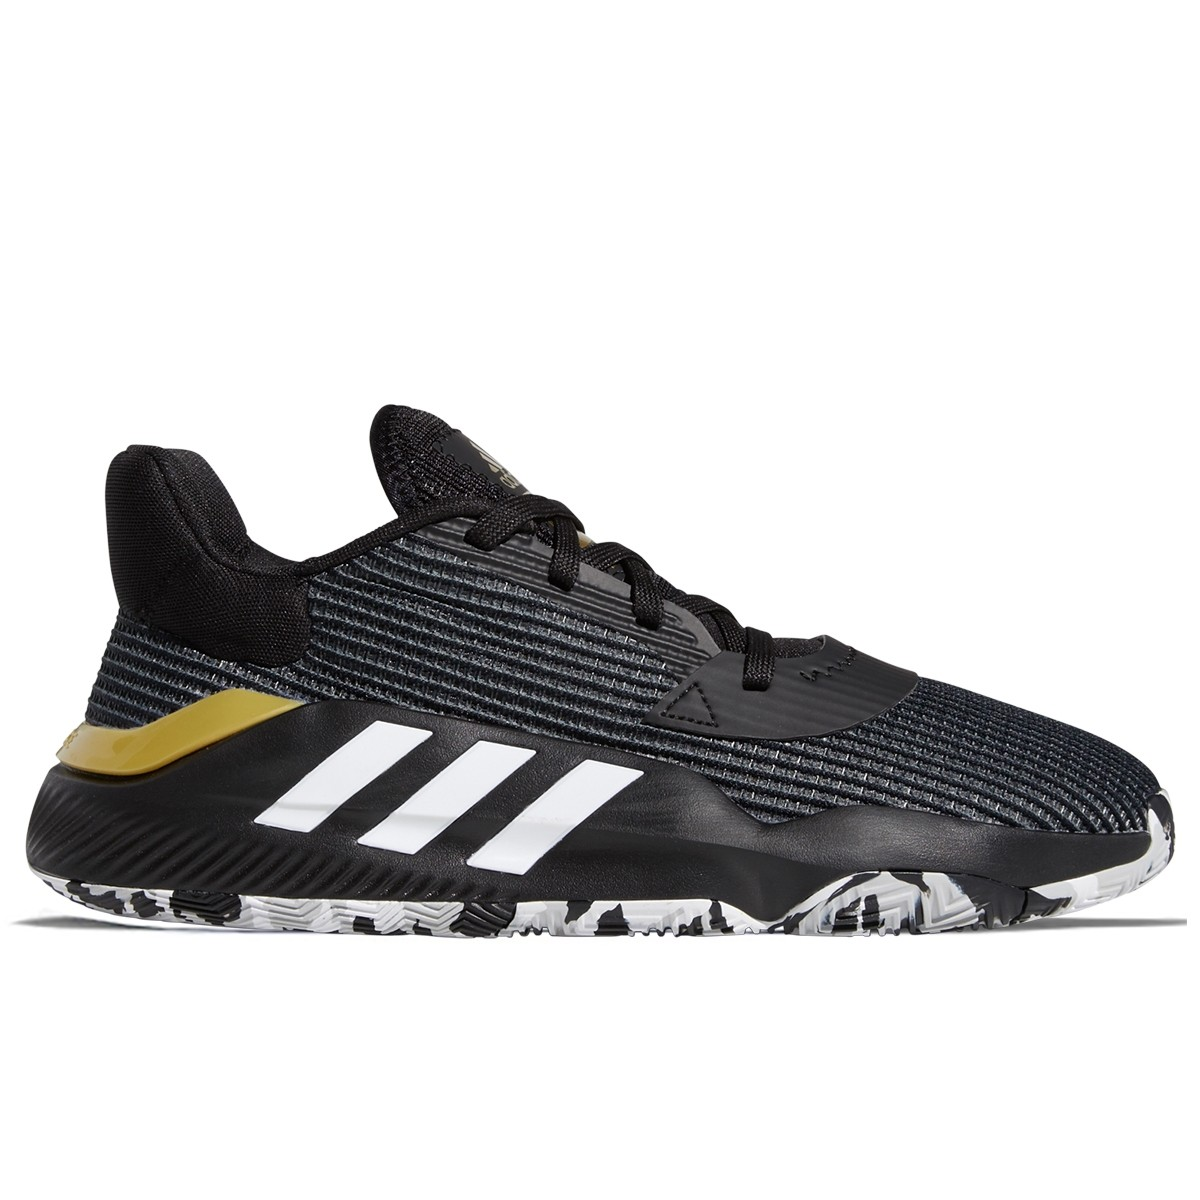 ADIDAS Pro Bounce Low 2019 'Black Gold'